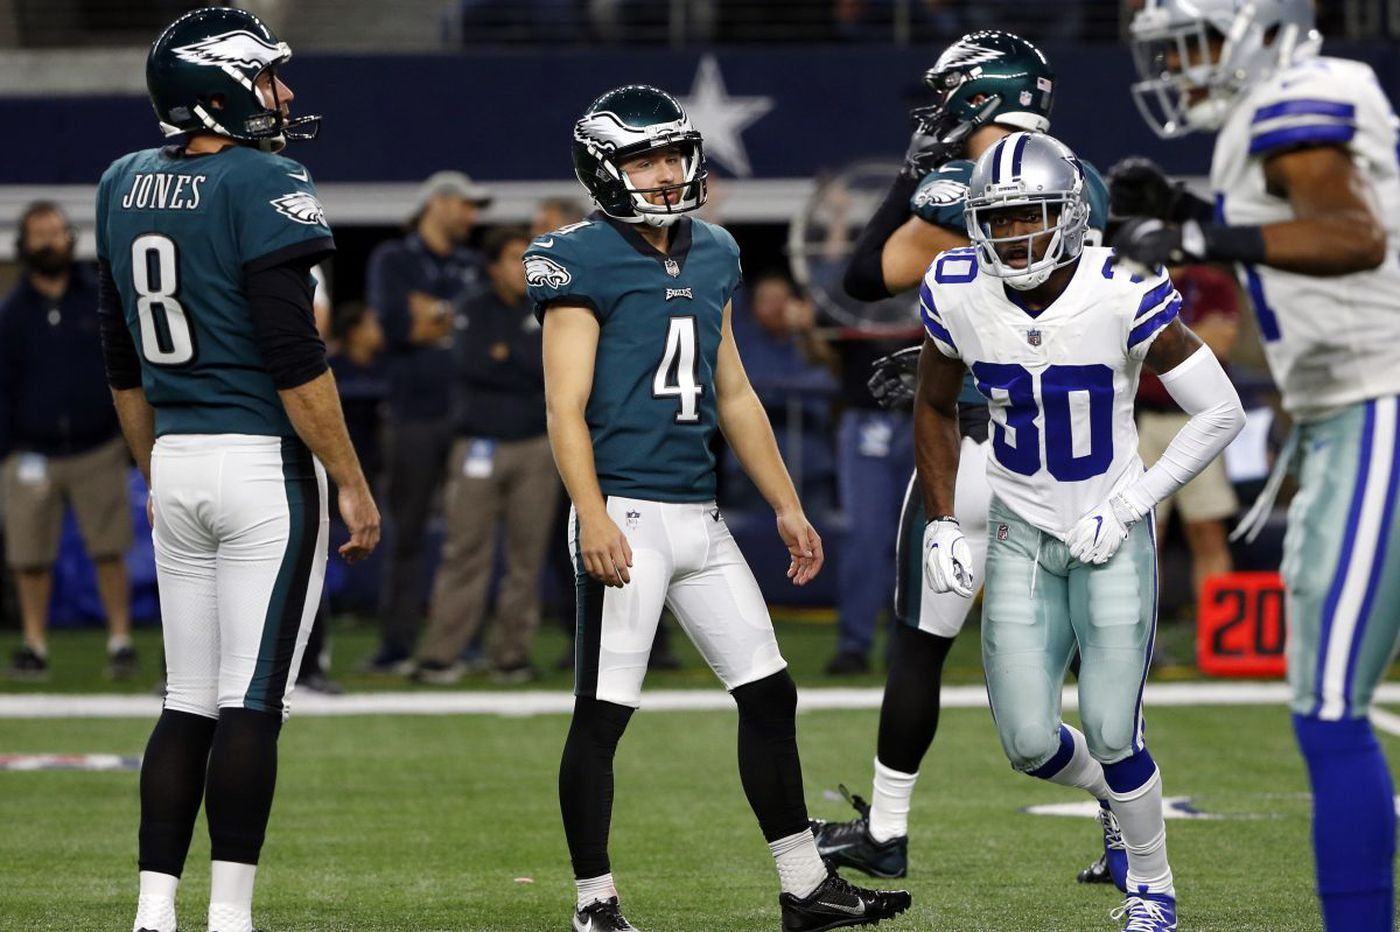 Eagles kicker Jake Elliott ruled out of game with concussion